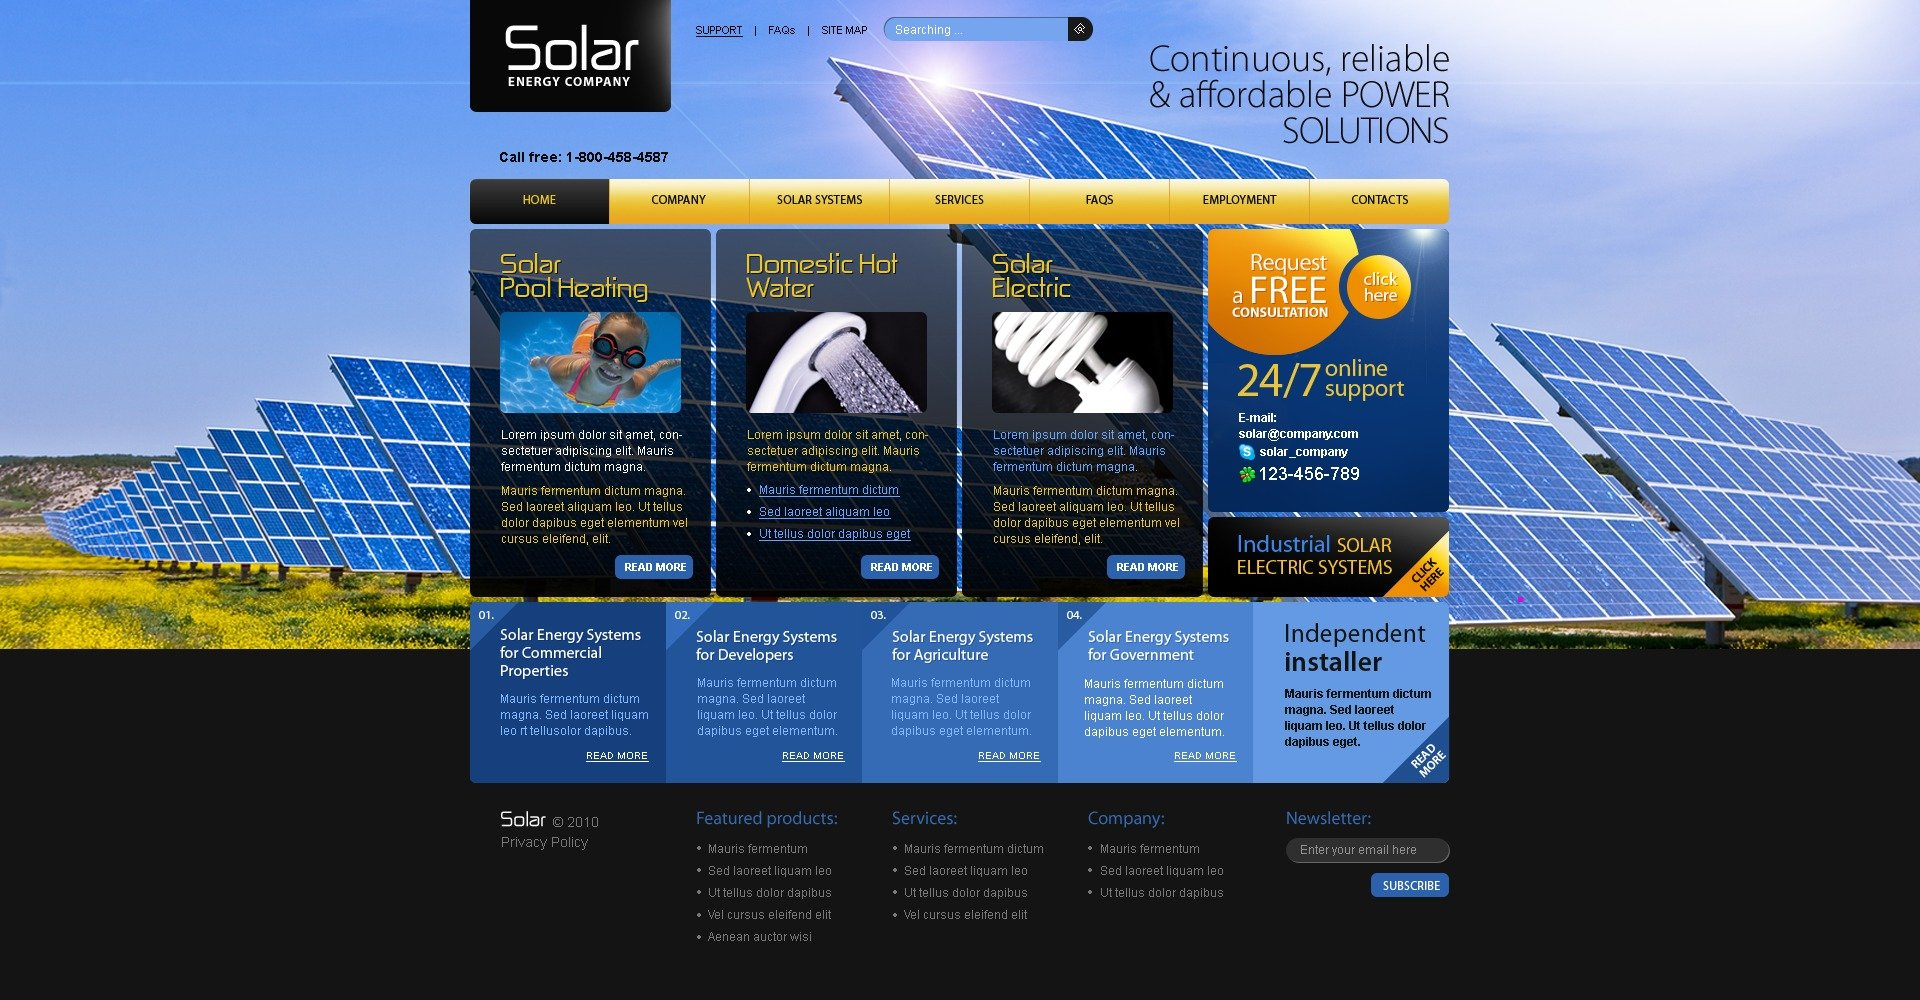 The Solar Energy Company System PSD Design 54297, one of the best PSD templates of its kind (most popular, flash 8, wide, alternative power), also known as solar energy company system PSD template, ecological PSD template, sun PSD template, clean environment PSD template, alternative PSD template, warm PSD template, heat and related with solar energy company system, ecological, sun, clean environment, alternative, warm, heat, etc.